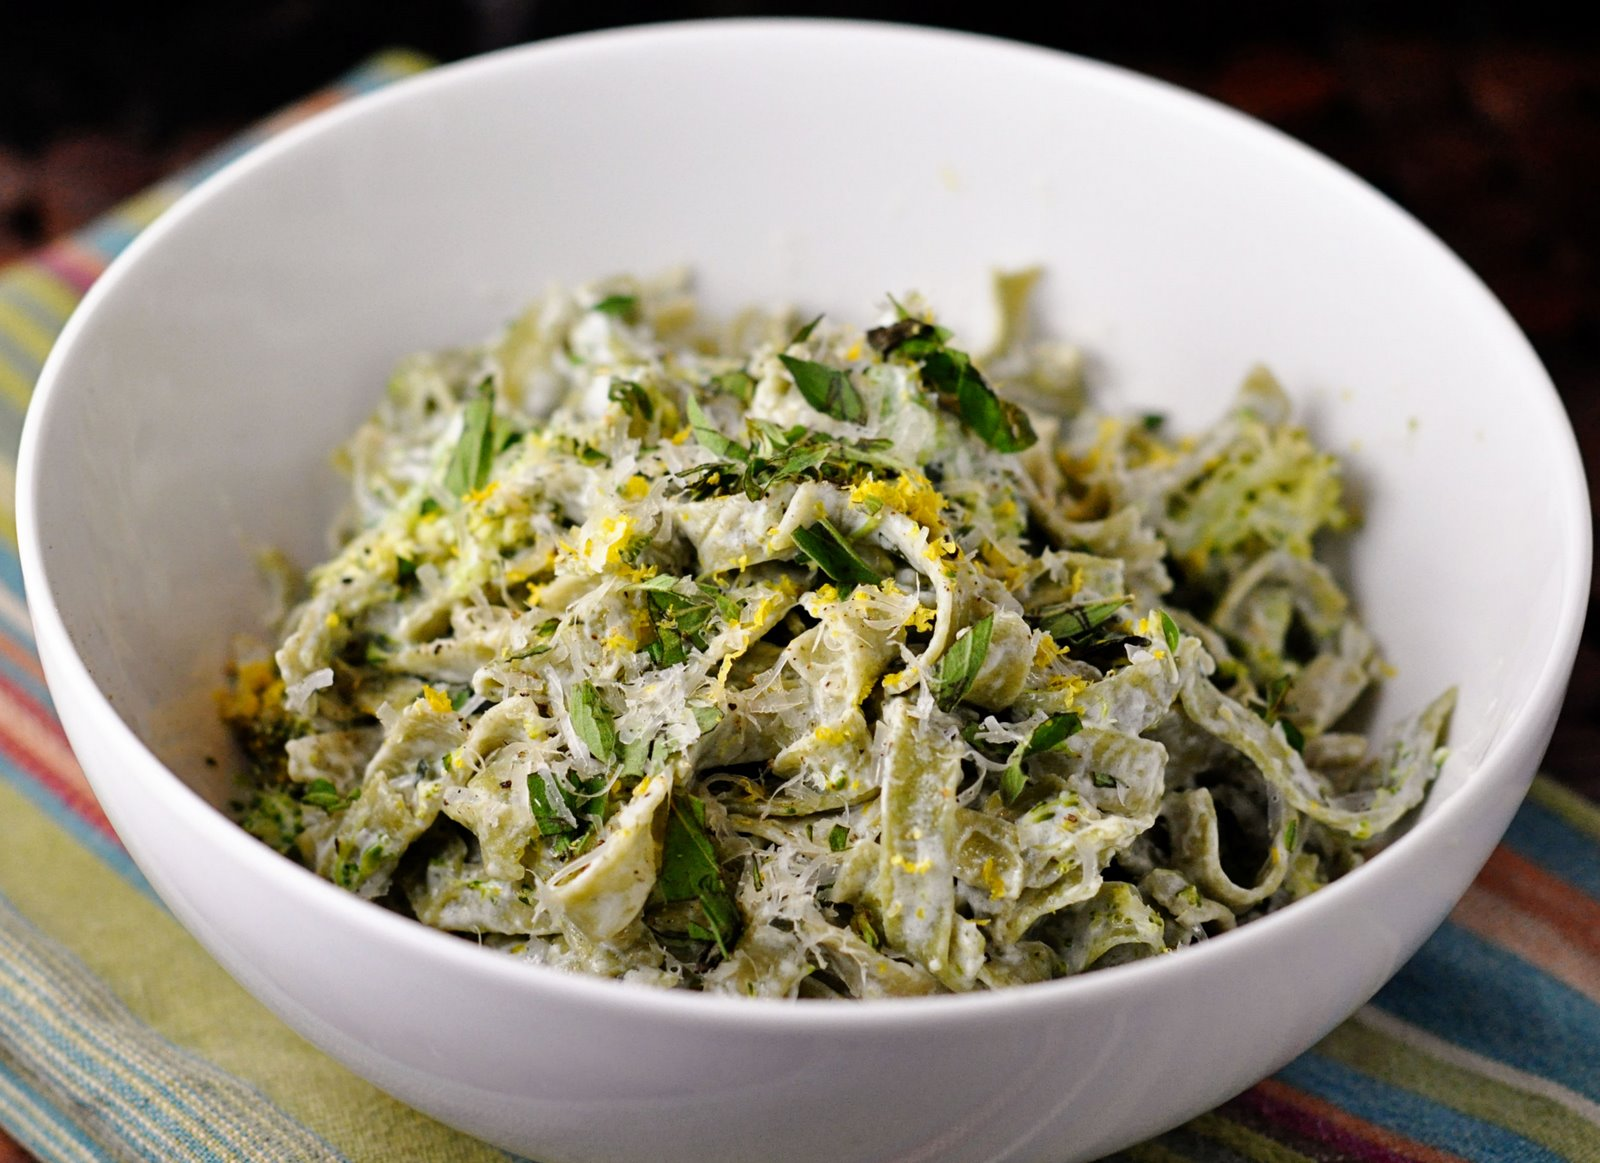 Marriage Factory: Pasta with Broccoli, Goat Cheese and Oregano